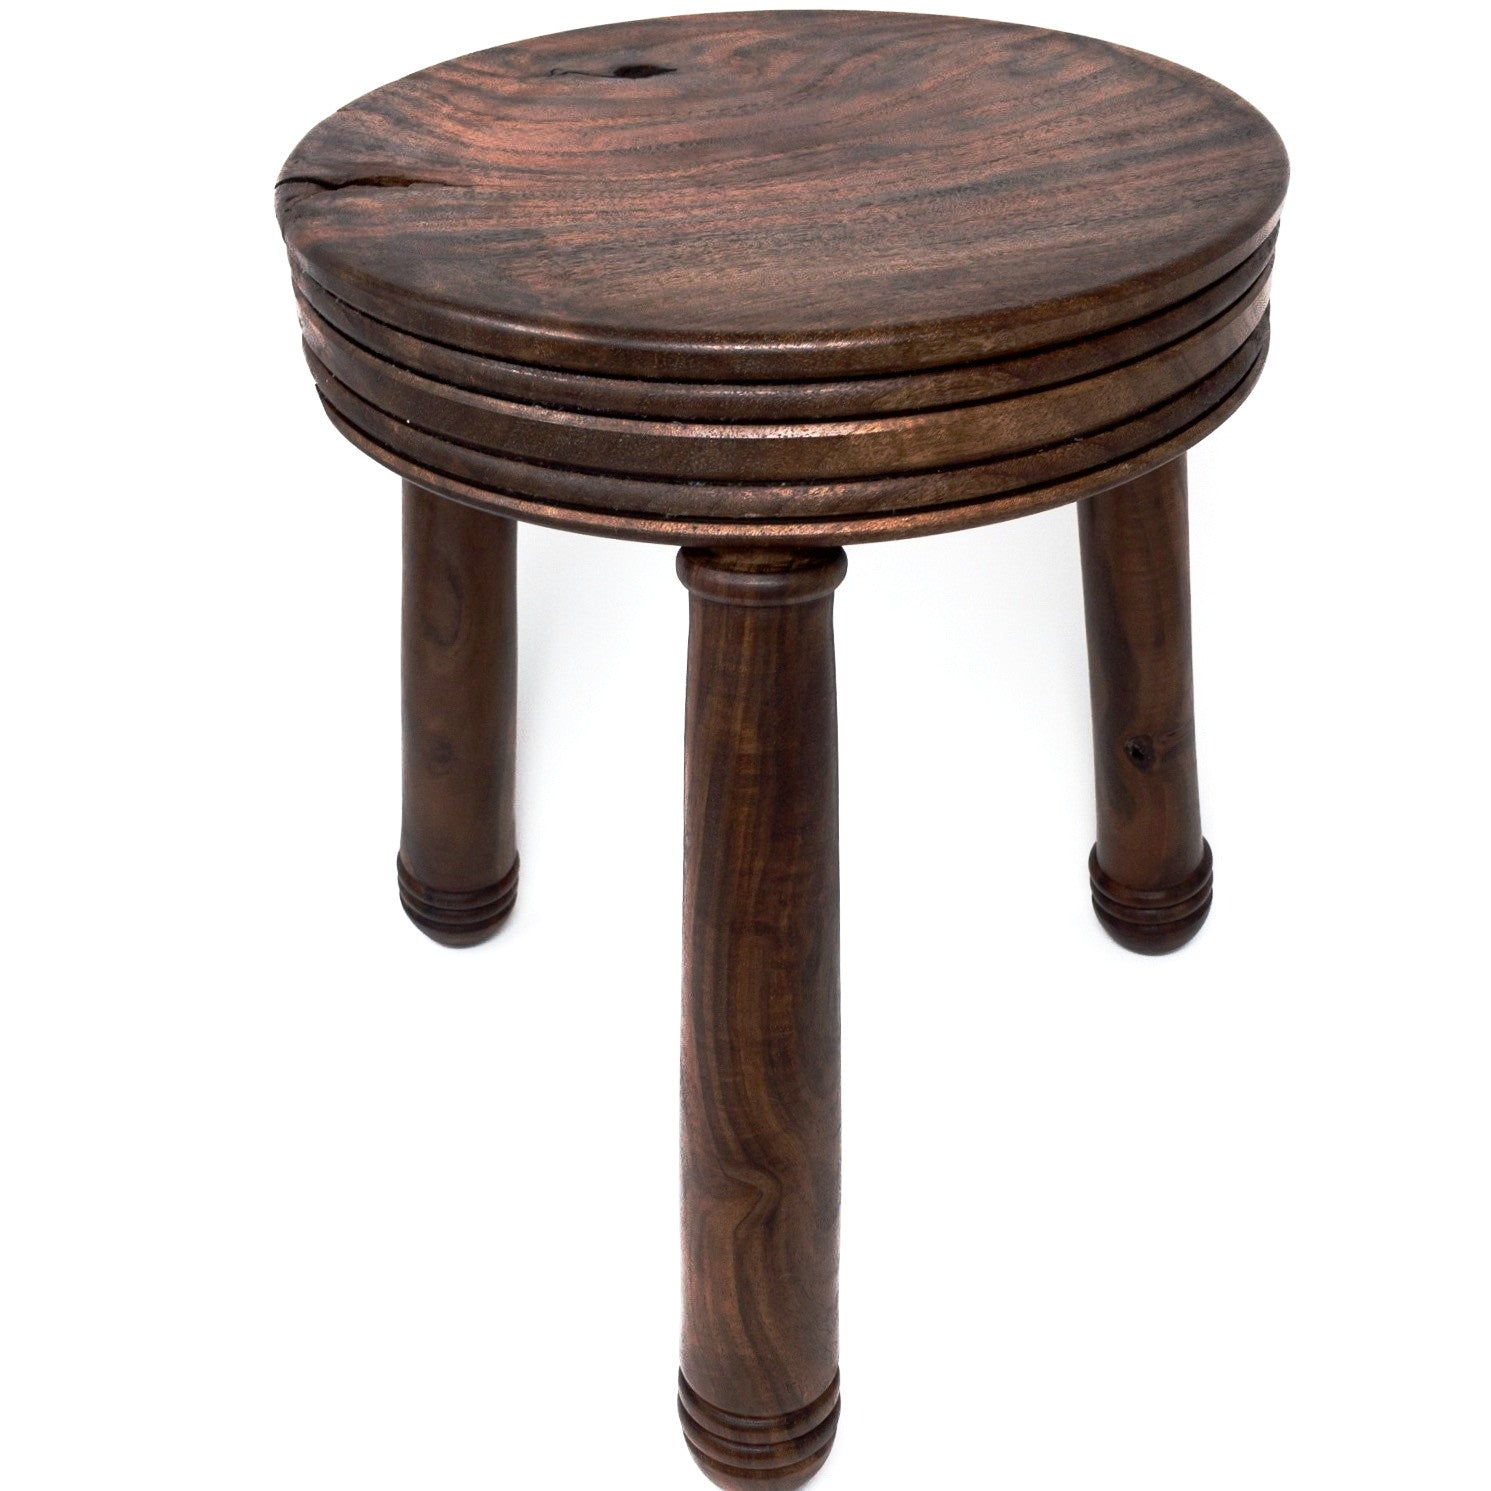 Brilliant Black Walnut Stool Gmtry Best Dining Table And Chair Ideas Images Gmtryco